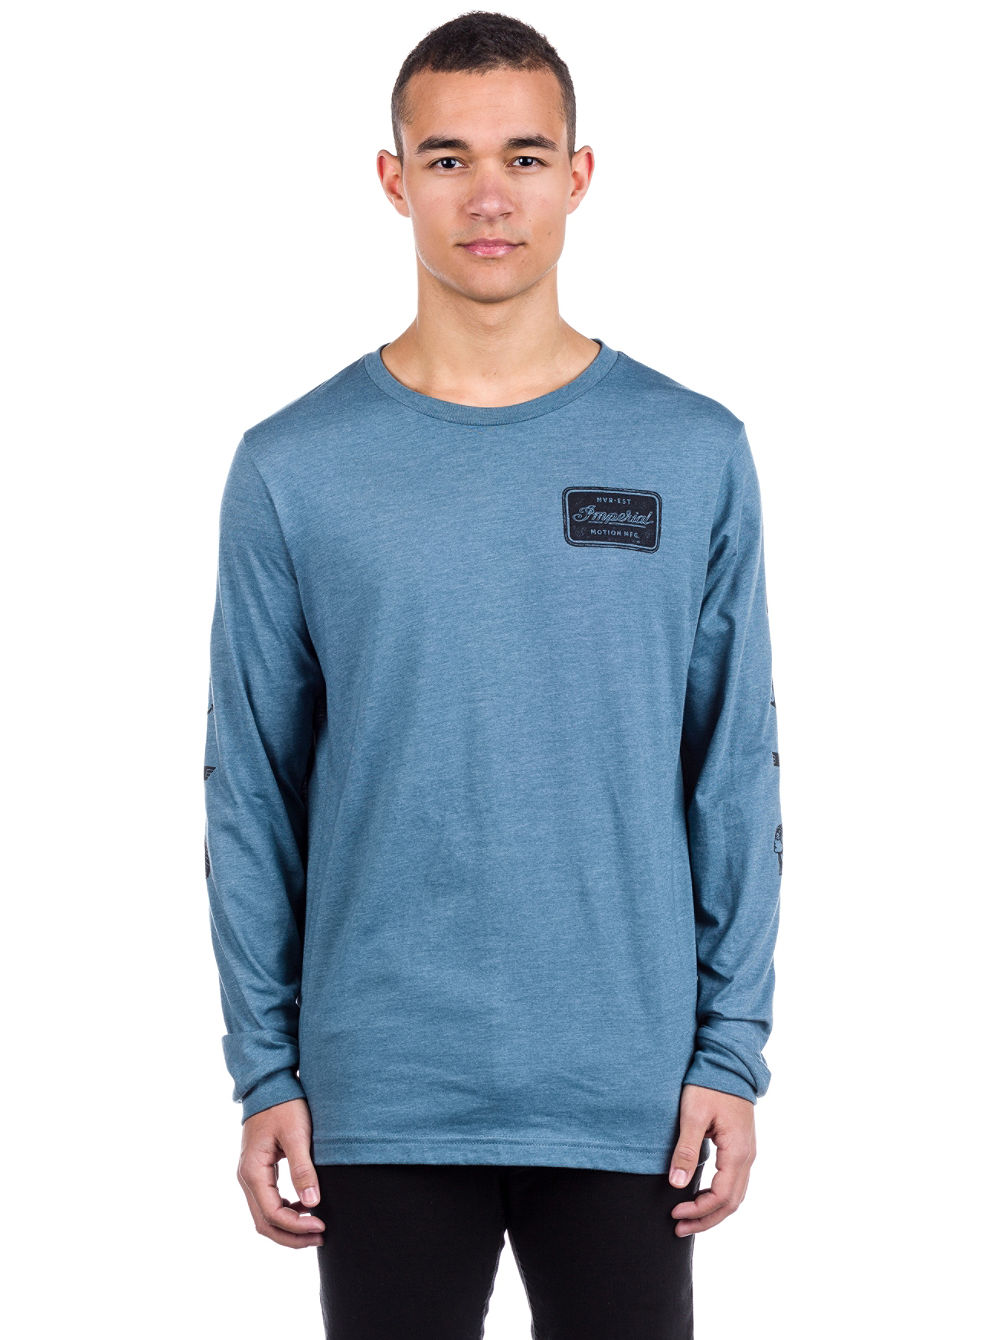 Flagship Long Sleeve T-Shirt